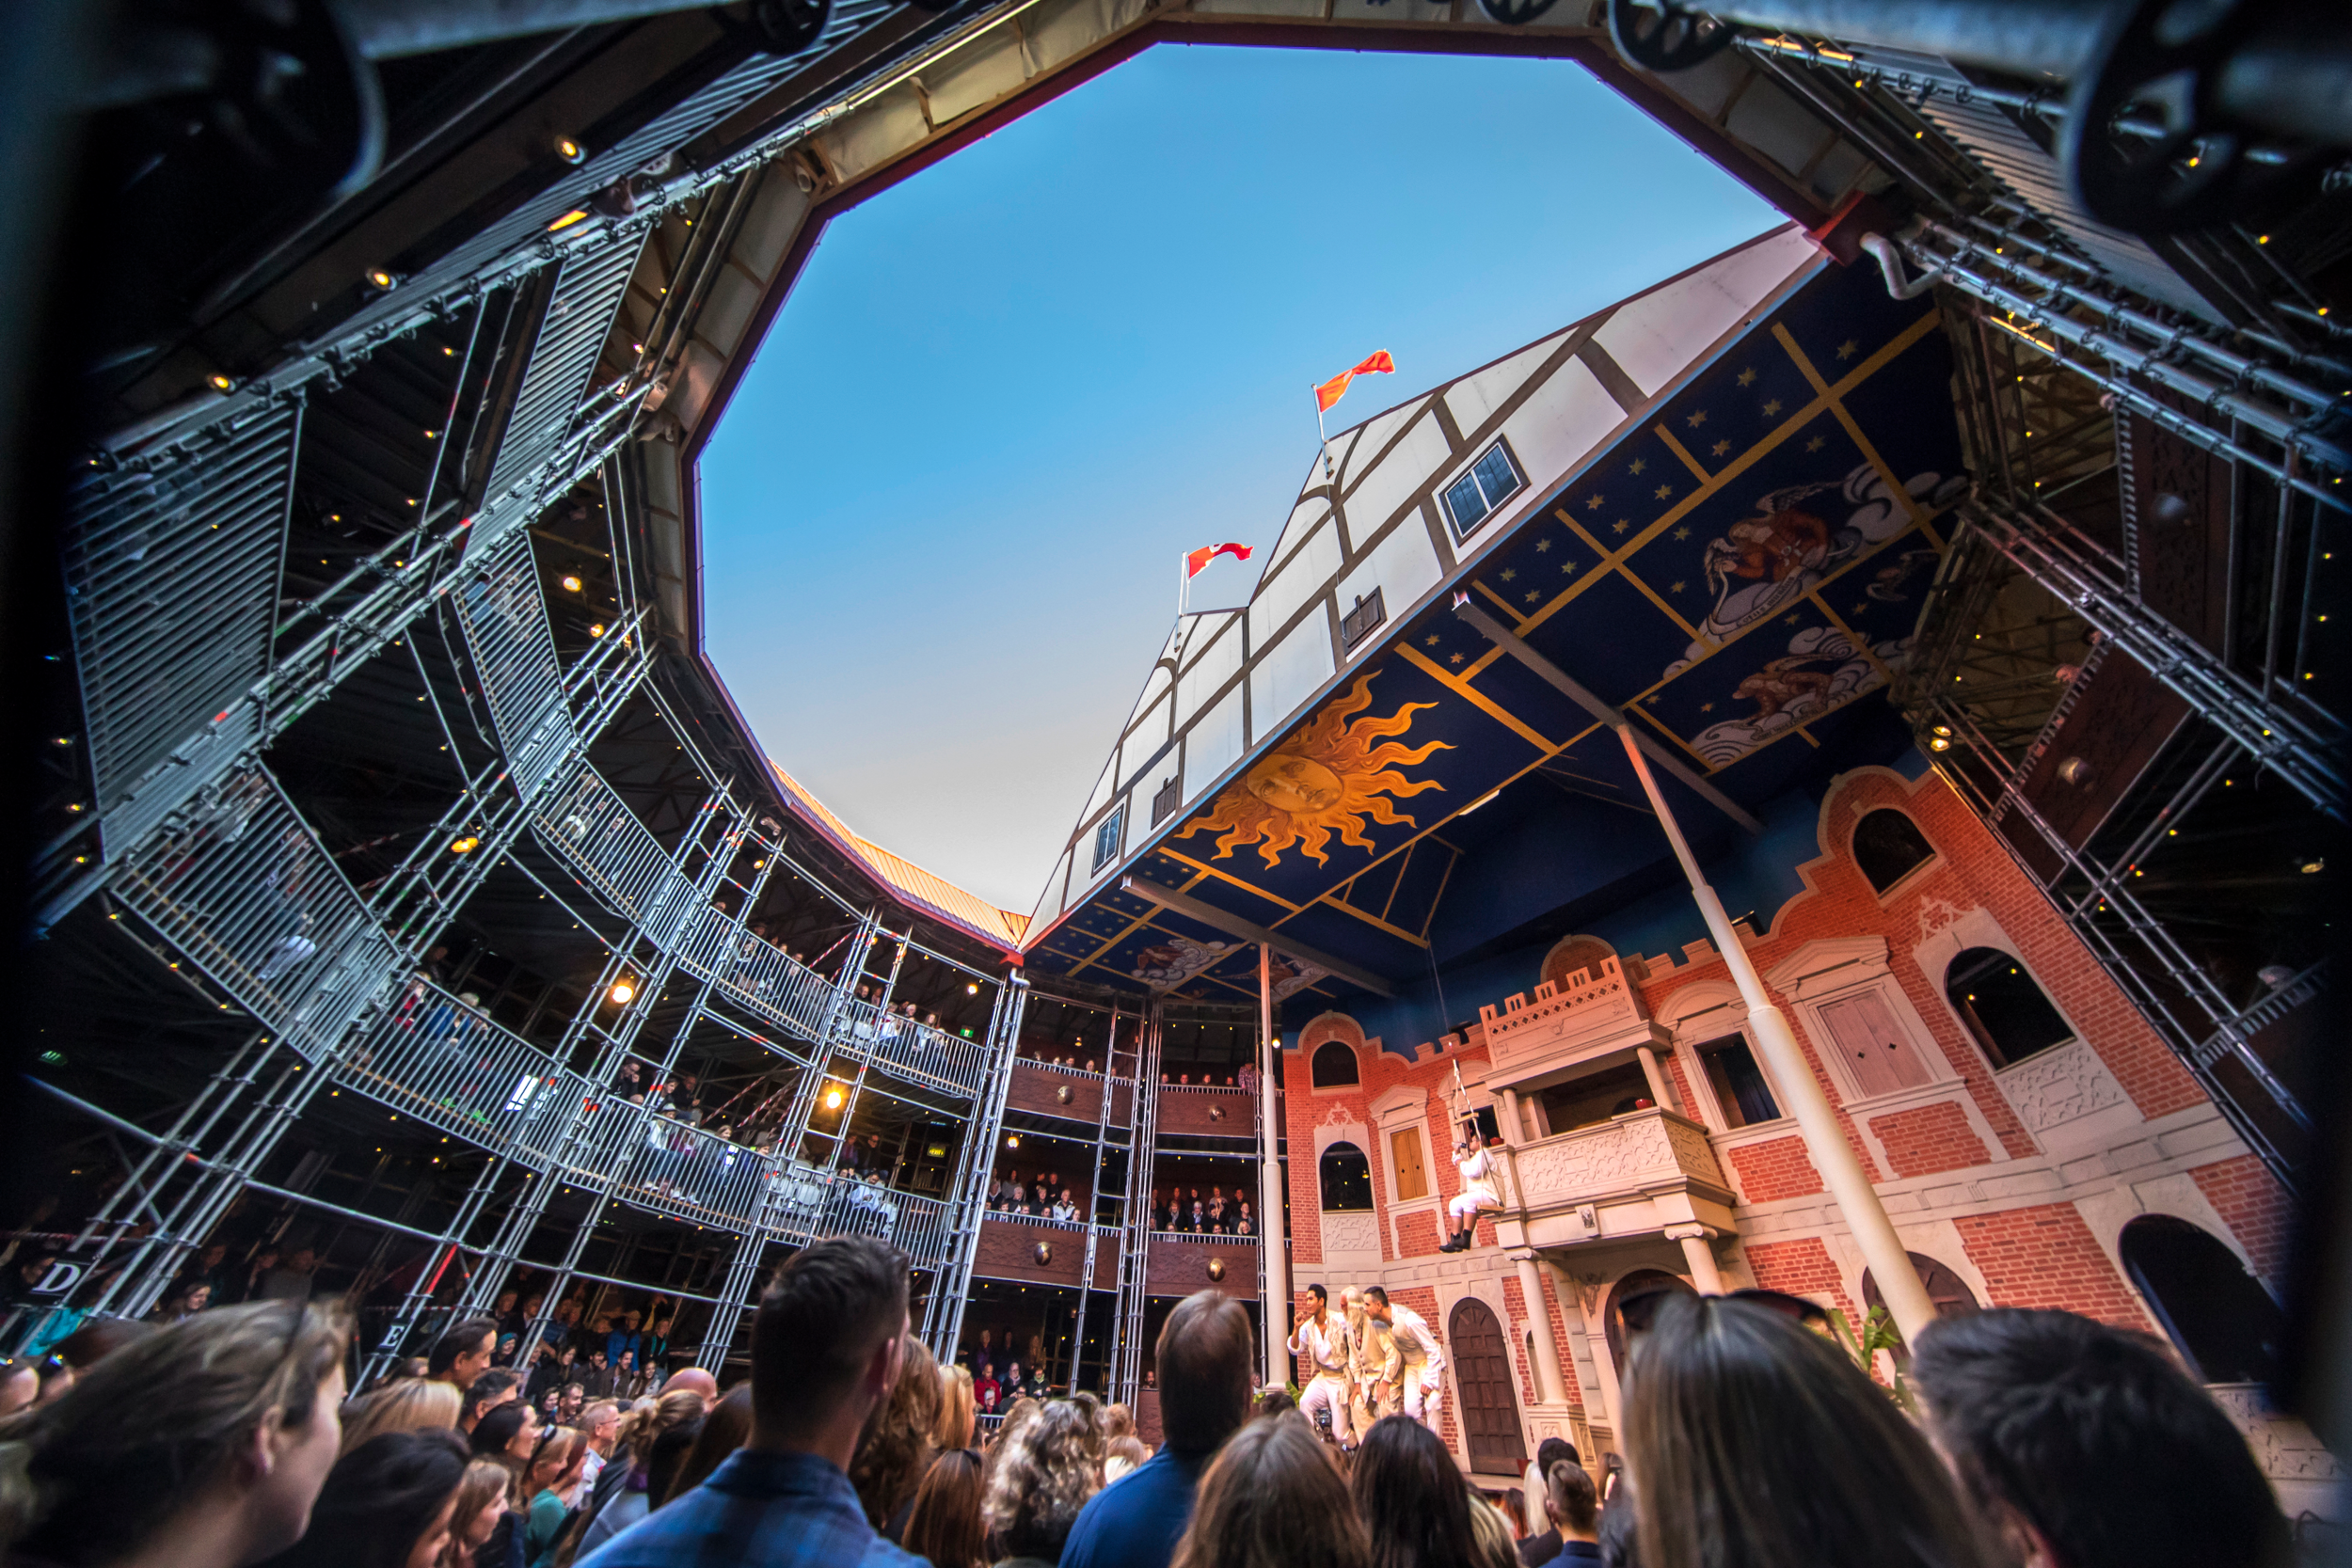 Macbeth at The Globe - the Home of Shakespeare with CPE Conferences group on London Conference